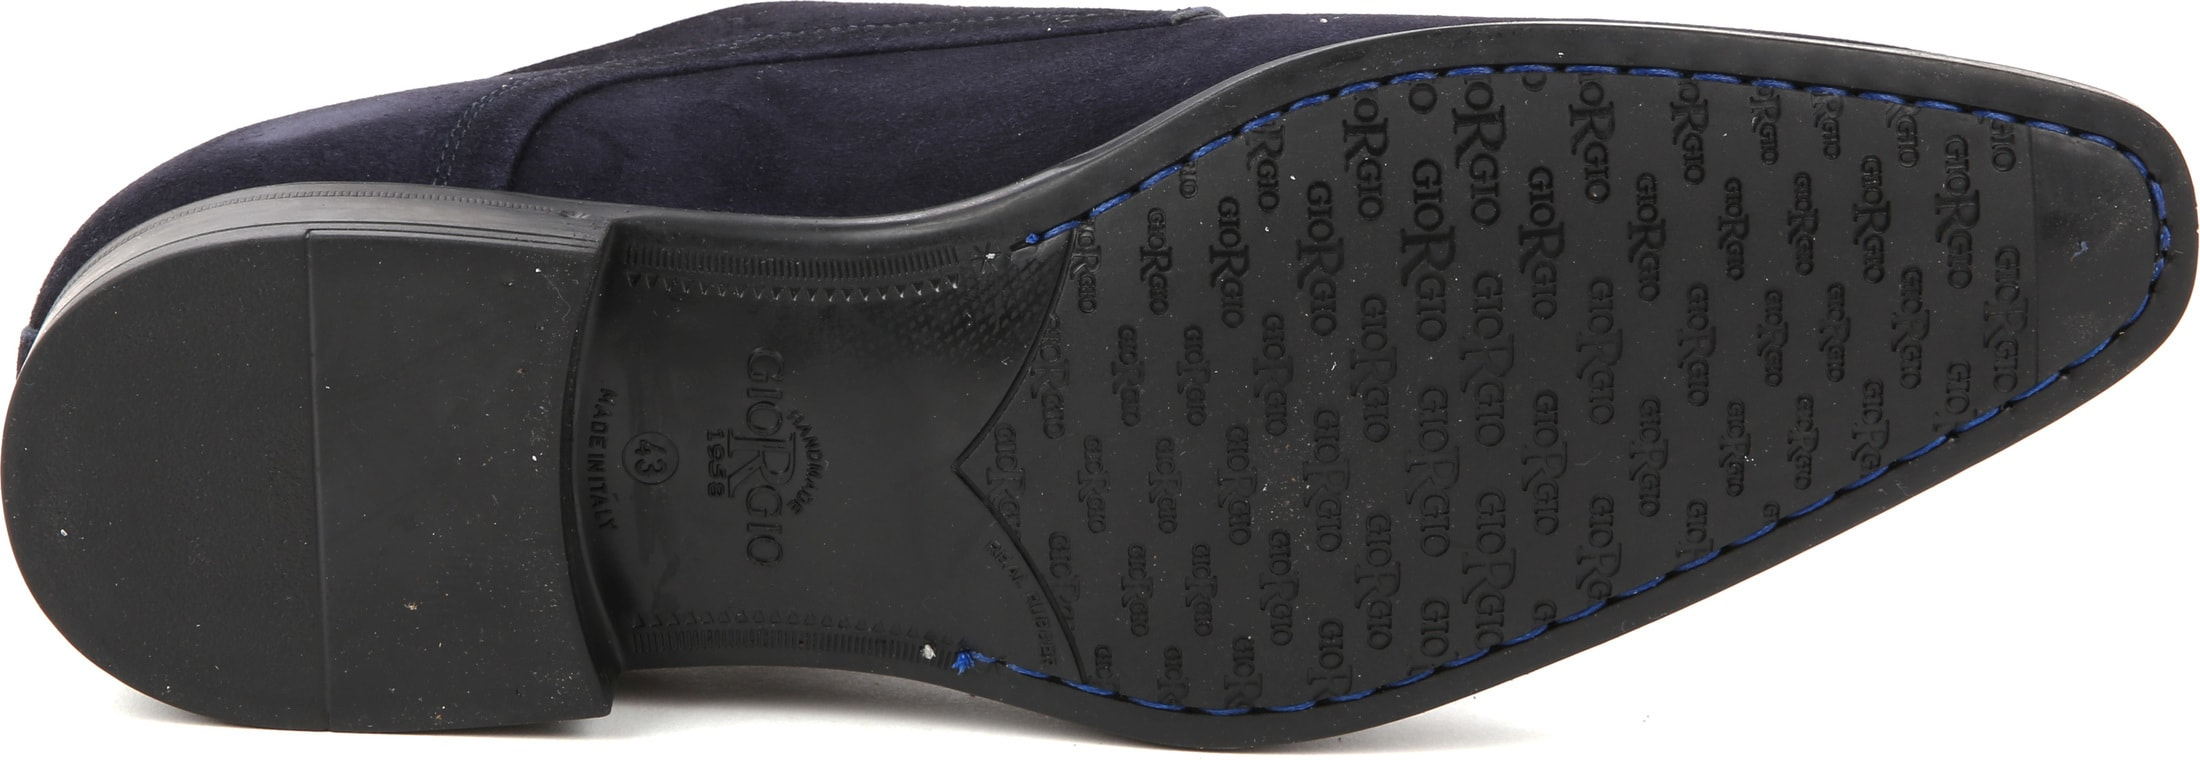 Giorgio Amalfi Shoe Monk Strap Navy photo 3